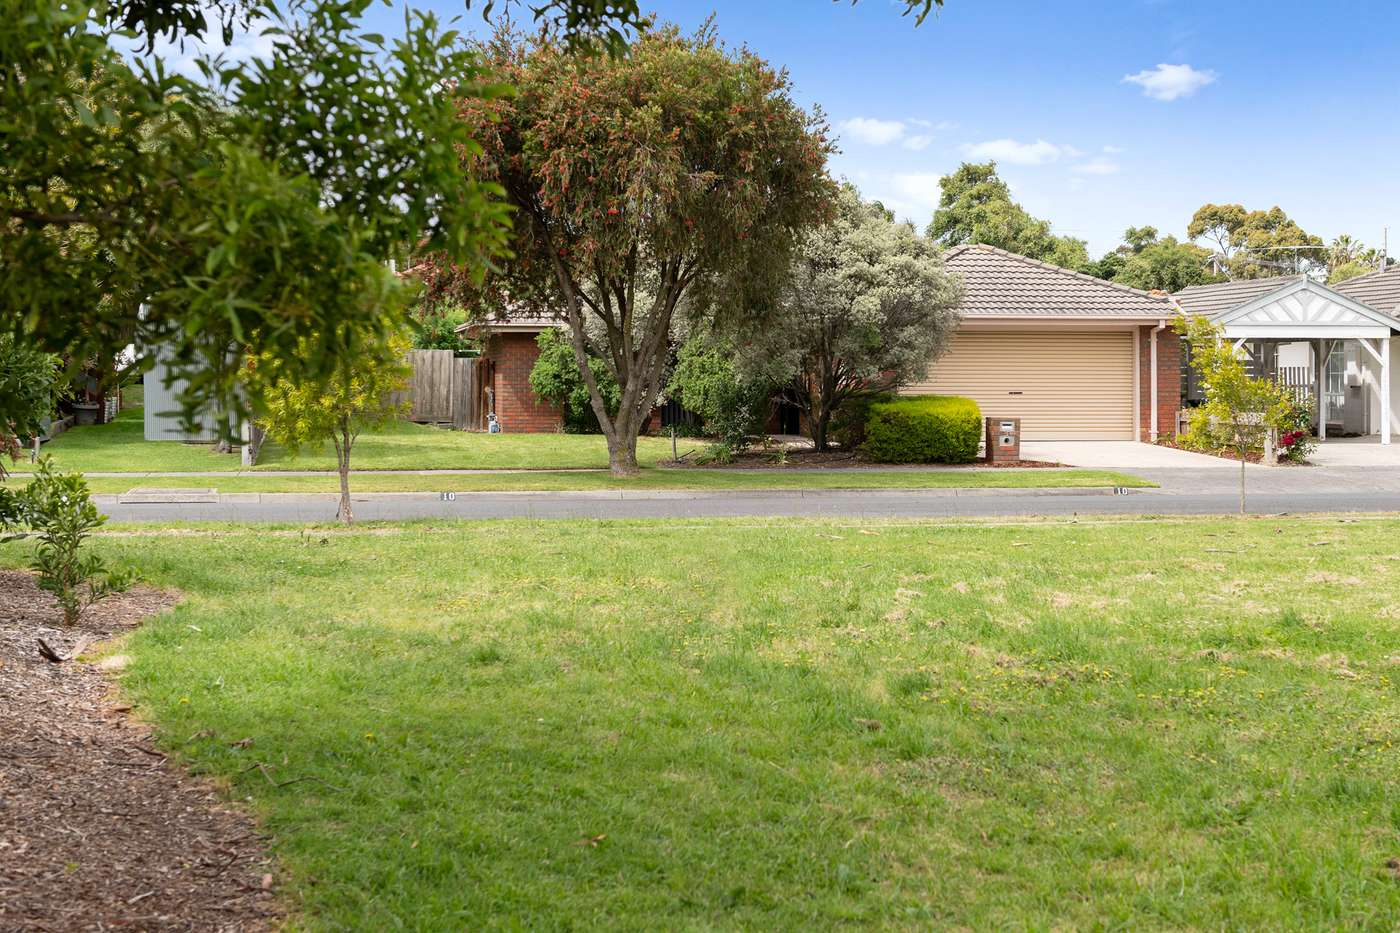 Main view of Homely house listing, 10 Dunn Crescent, Langwarrin, VIC 3910